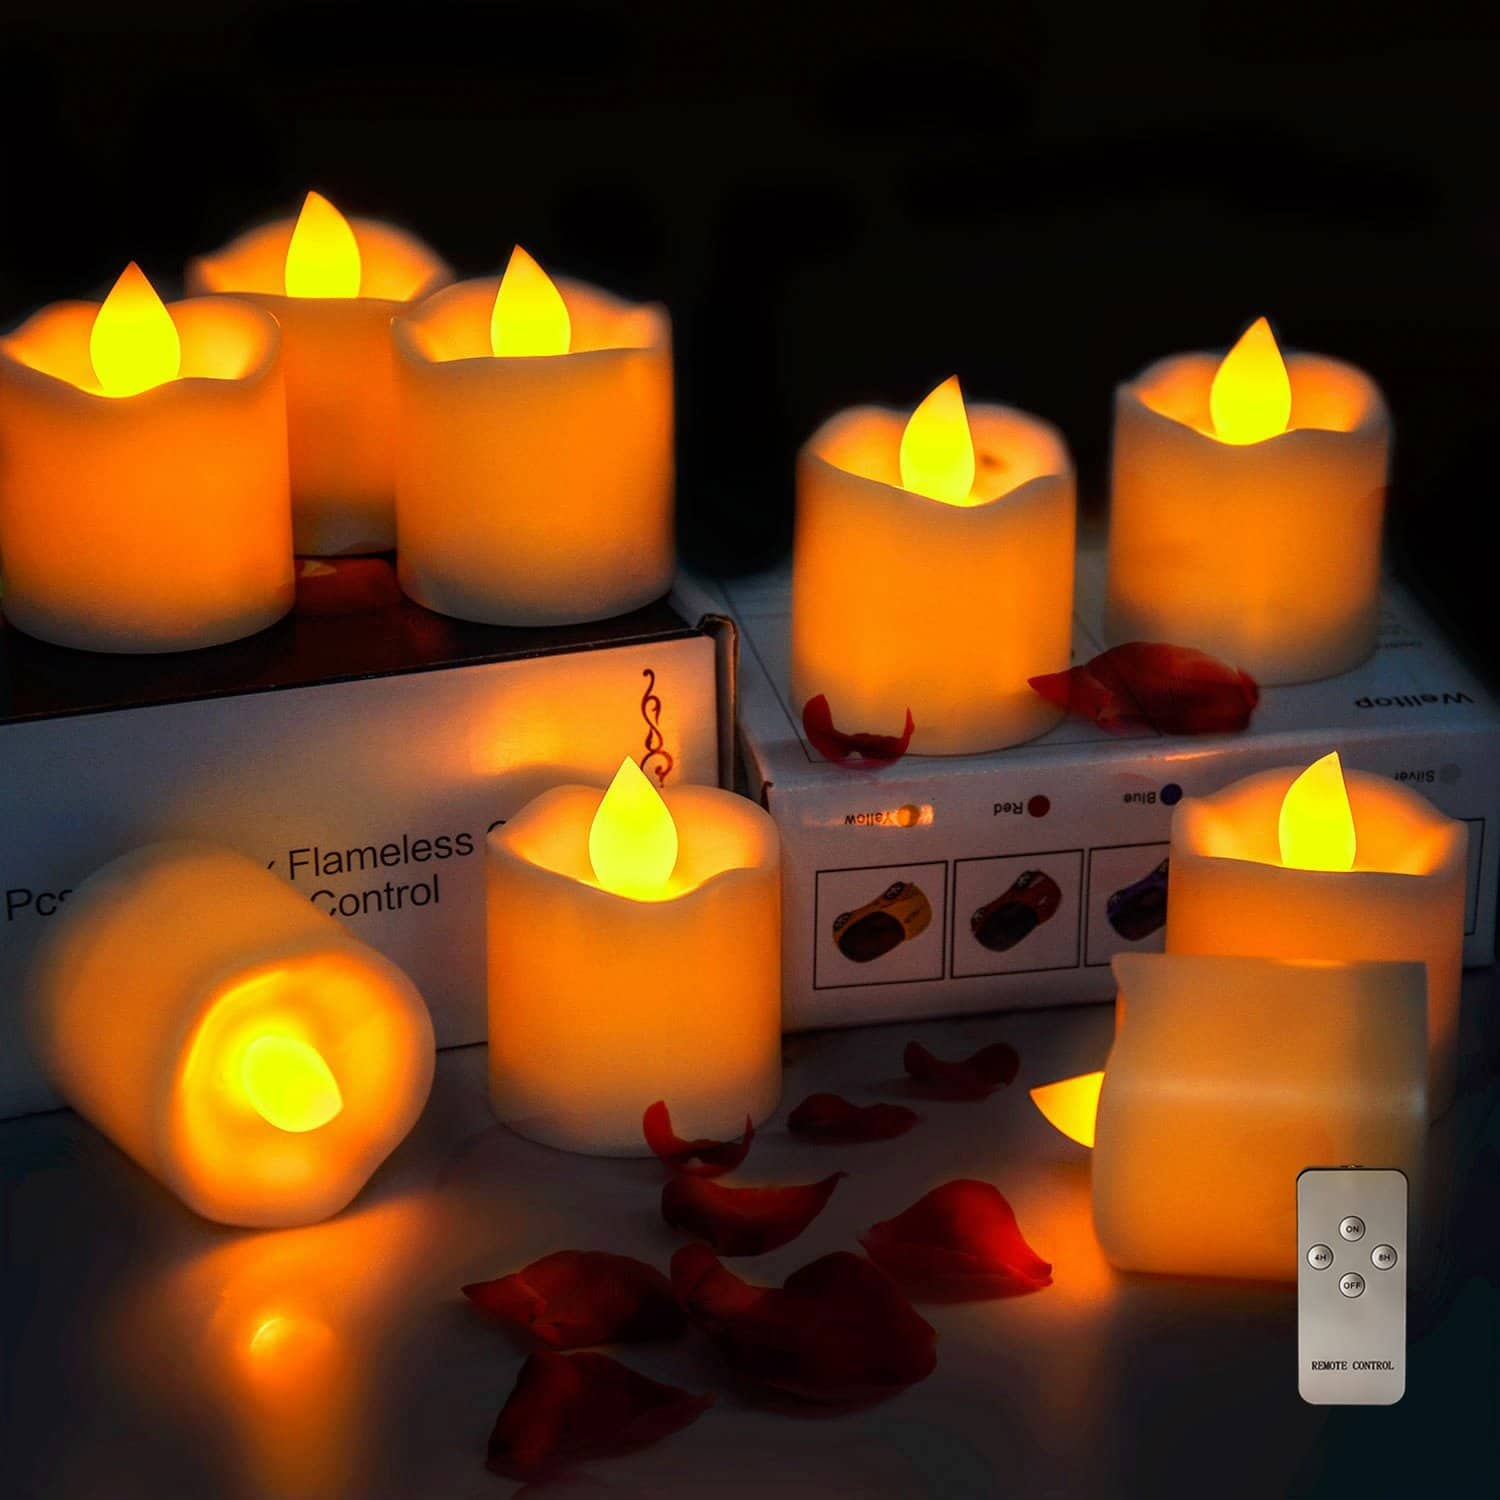 Battery Operated Remote Timer Flameless LED Candles 9pcs - 60% OFF (Free Prime Shipping) $6.62